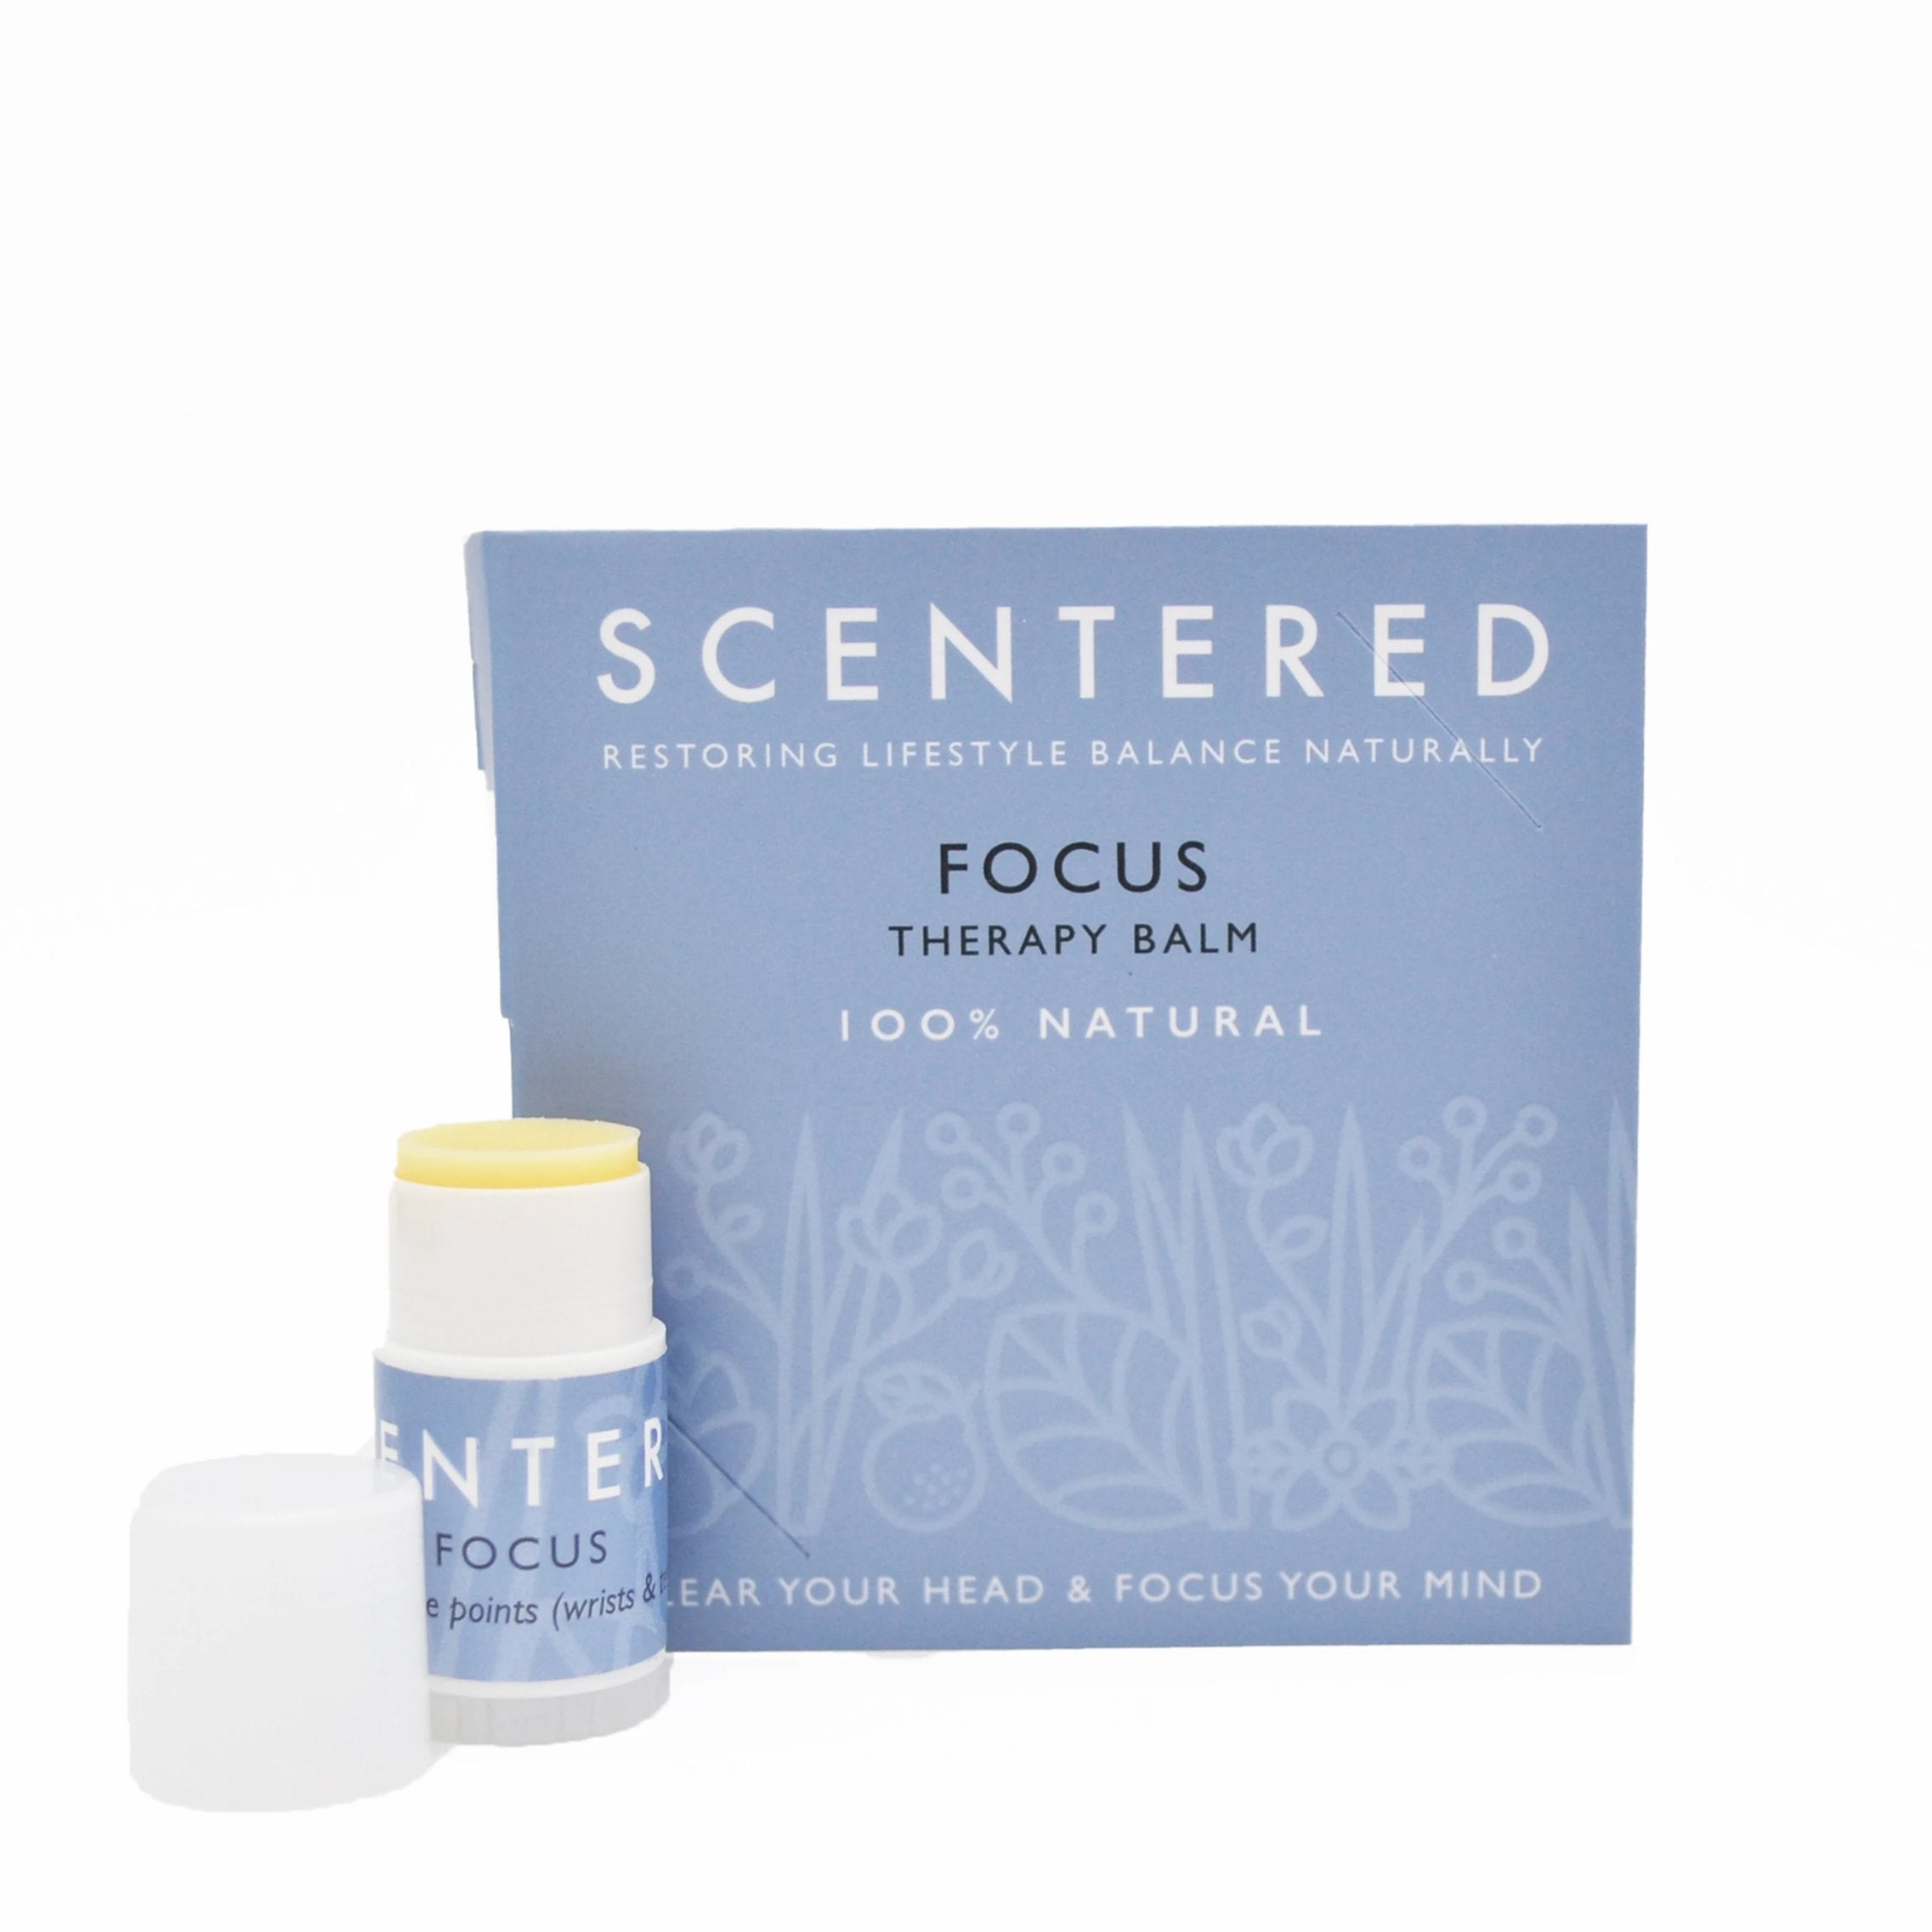 Focus Mini Aromatherapy Balm | Scentered